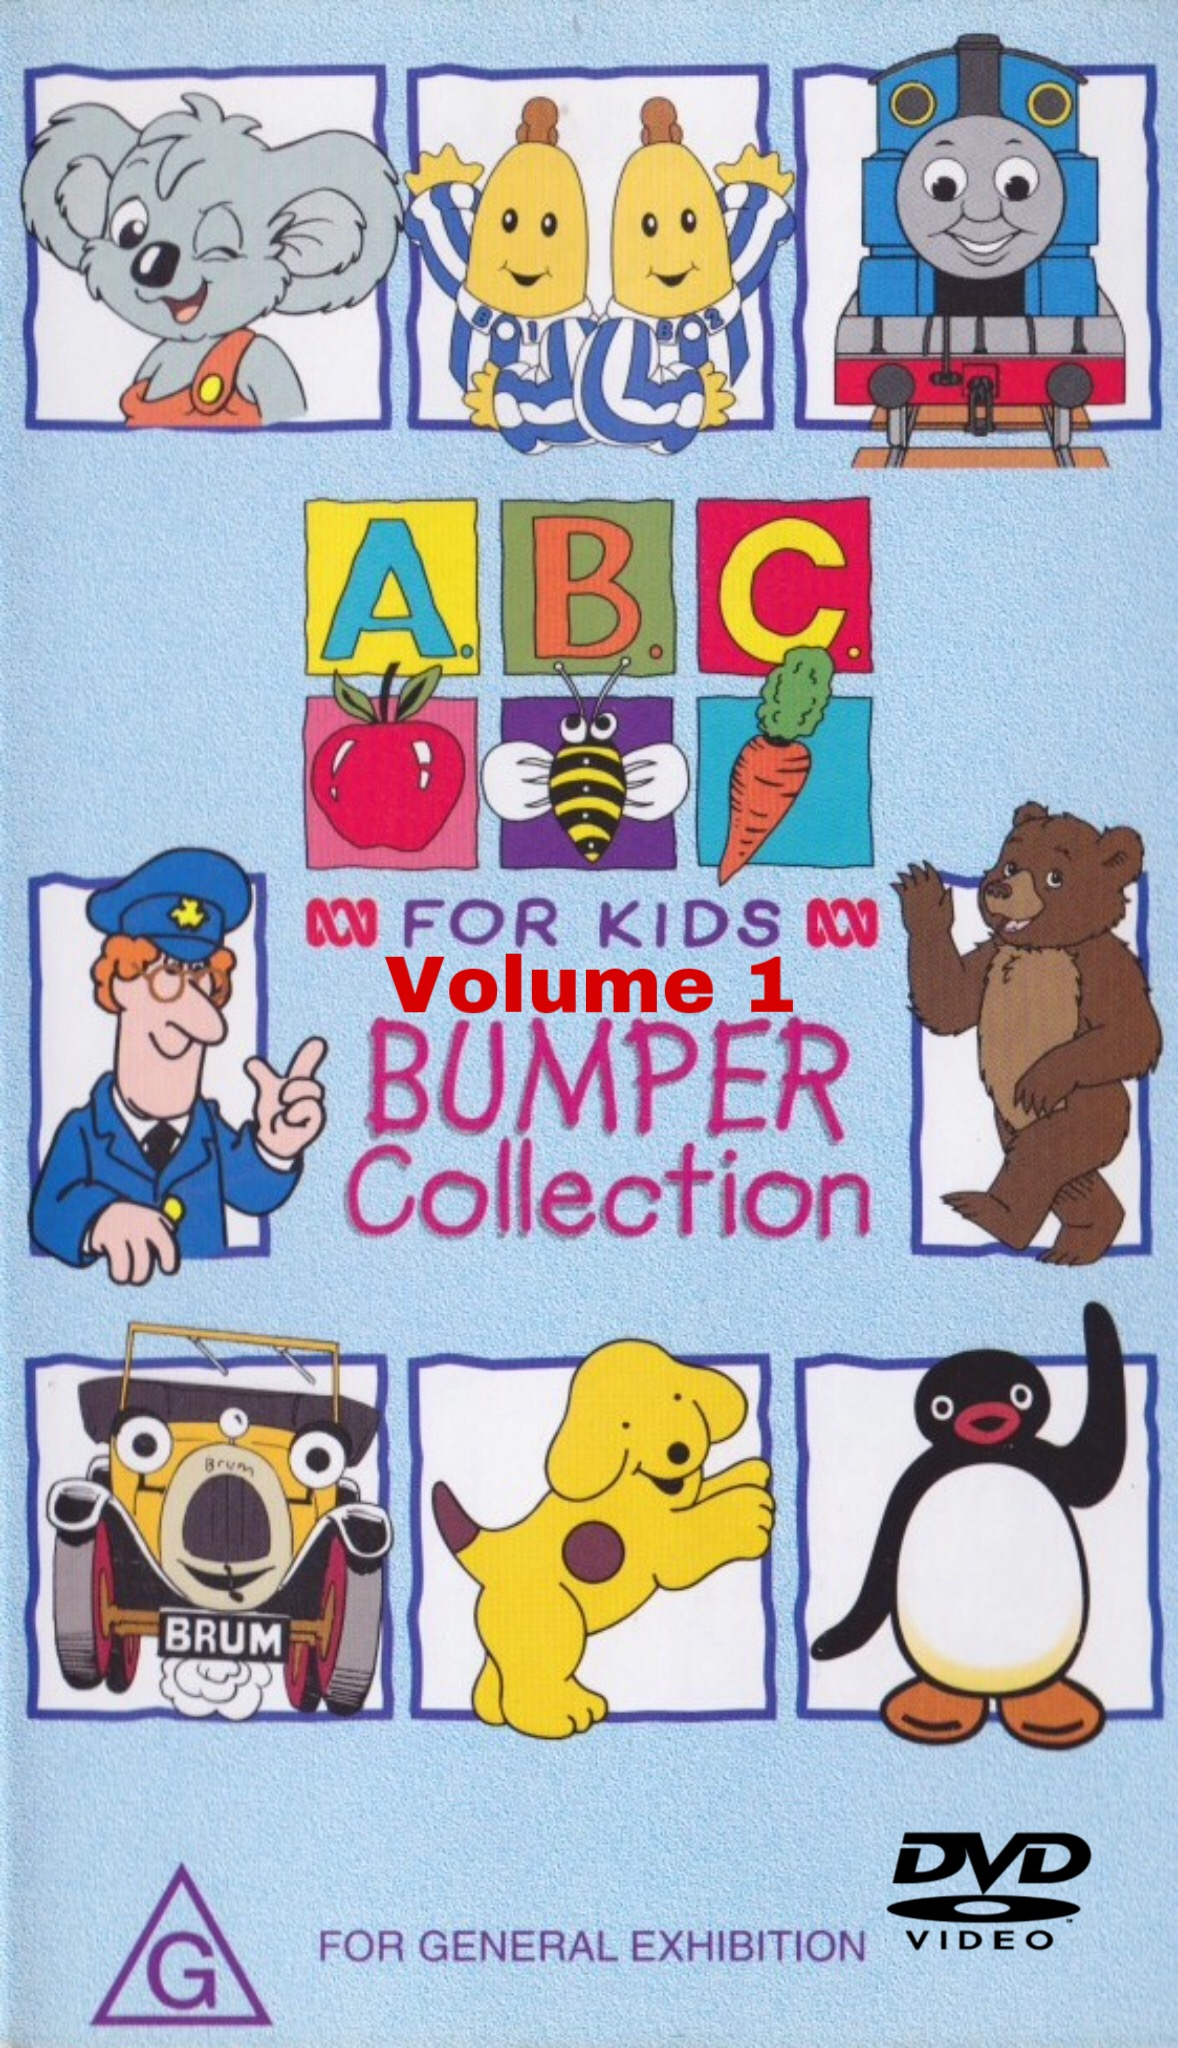 ABC For Kids - Volume 1: ABC for Kids Bumper Collection (1999)